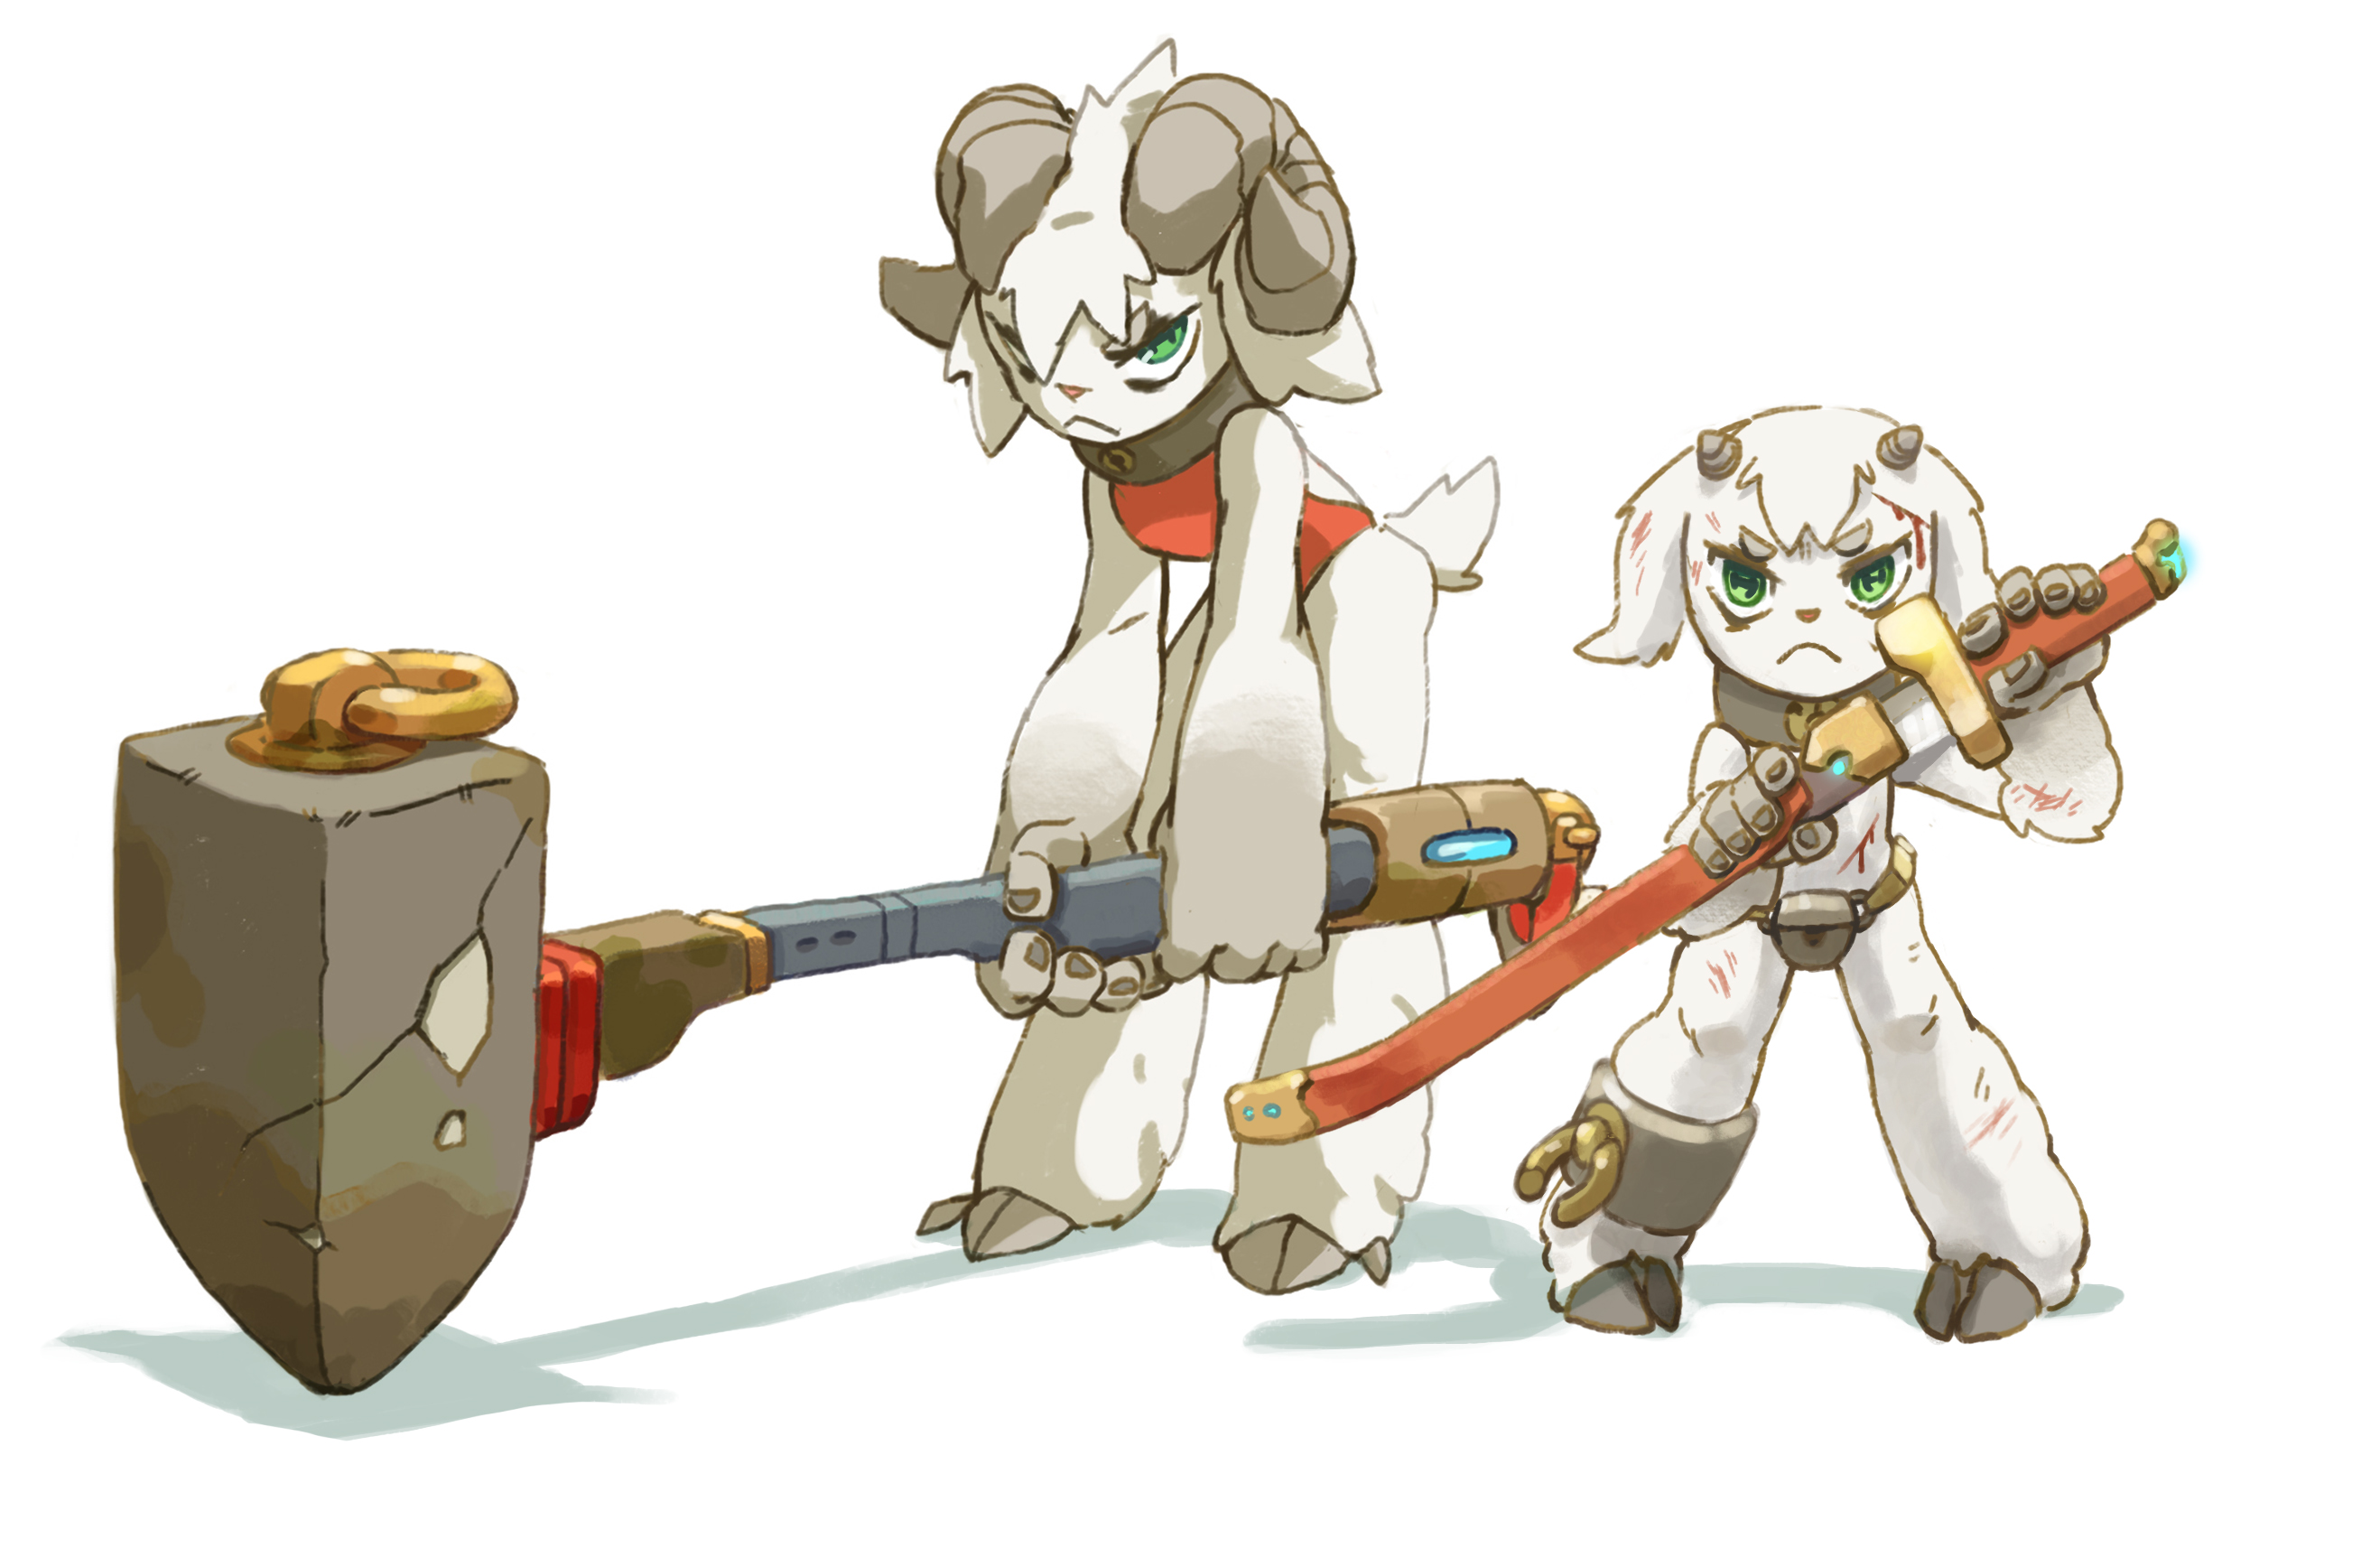 Goat fighters